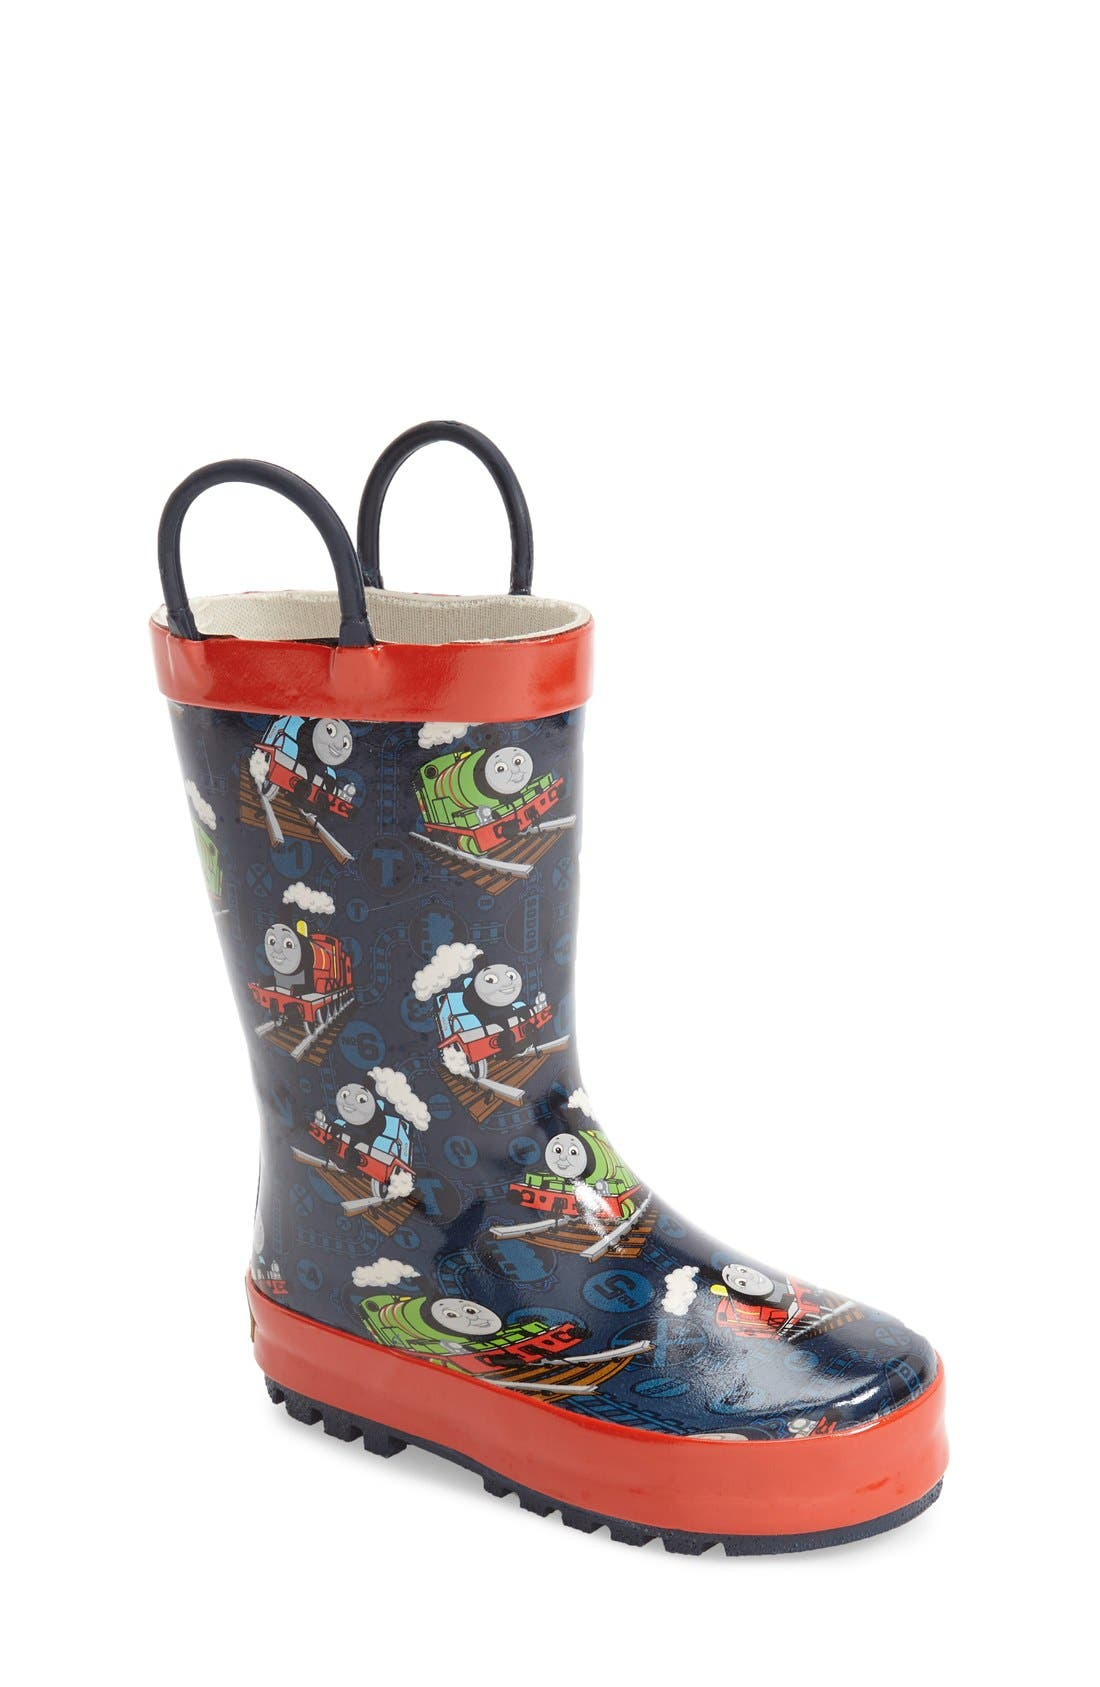 Thomas & Friends<sup>®</sup> Rain Boot,                         Main,                         color, Navy